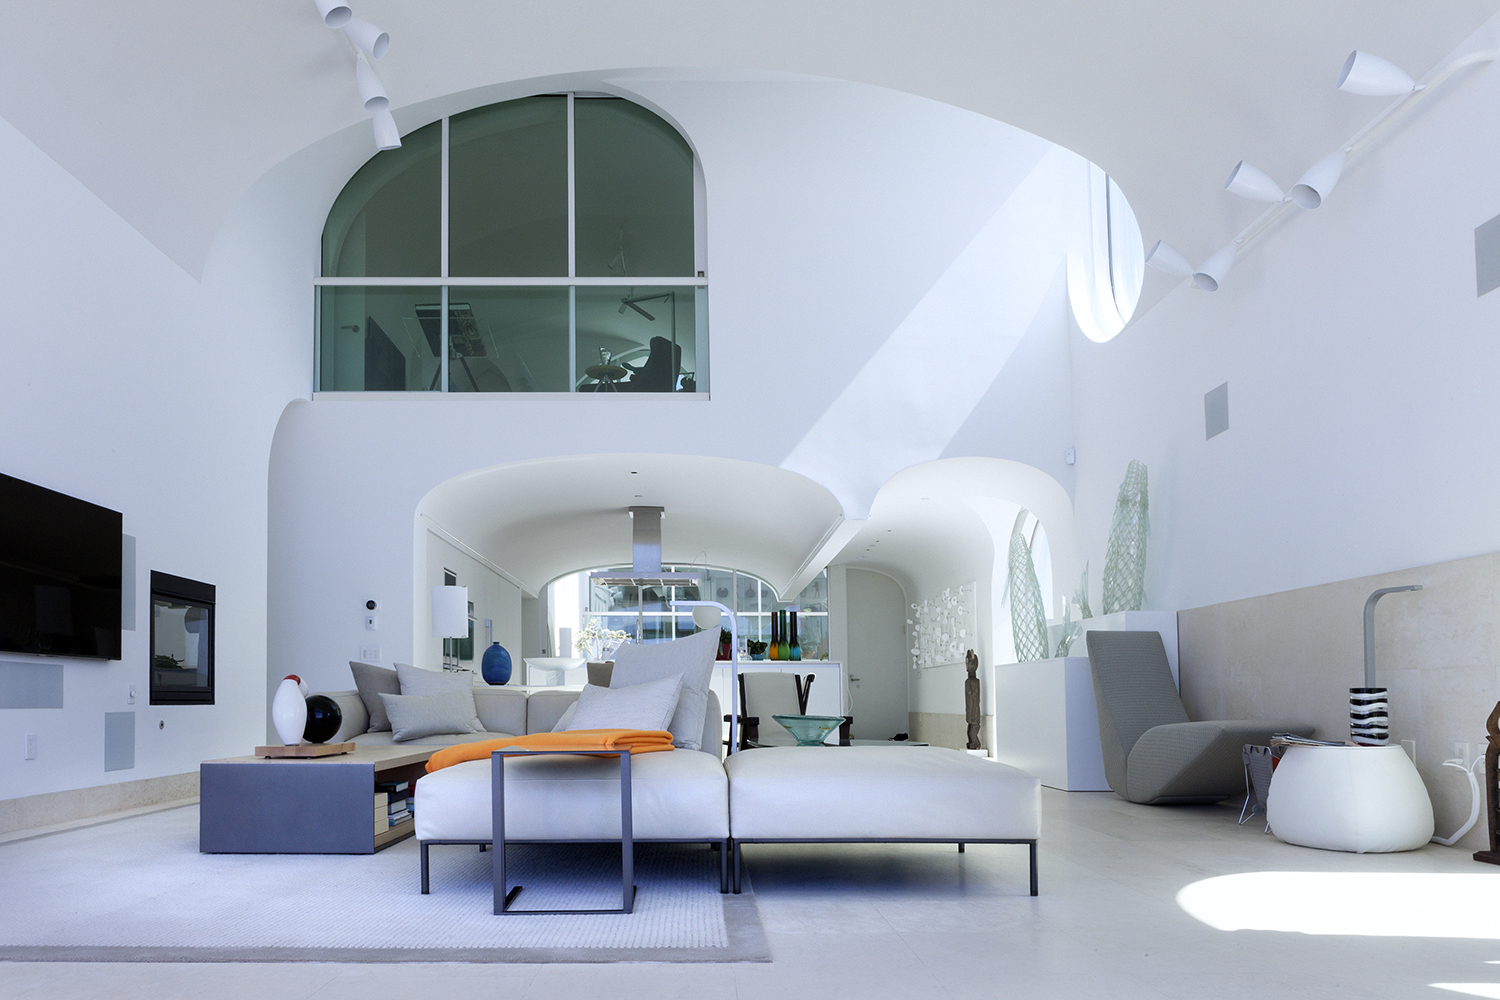 Fabulous Vault House In Oxnard California Is An Exploration Of Download Free Architecture Designs Intelgarnamadebymaigaardcom